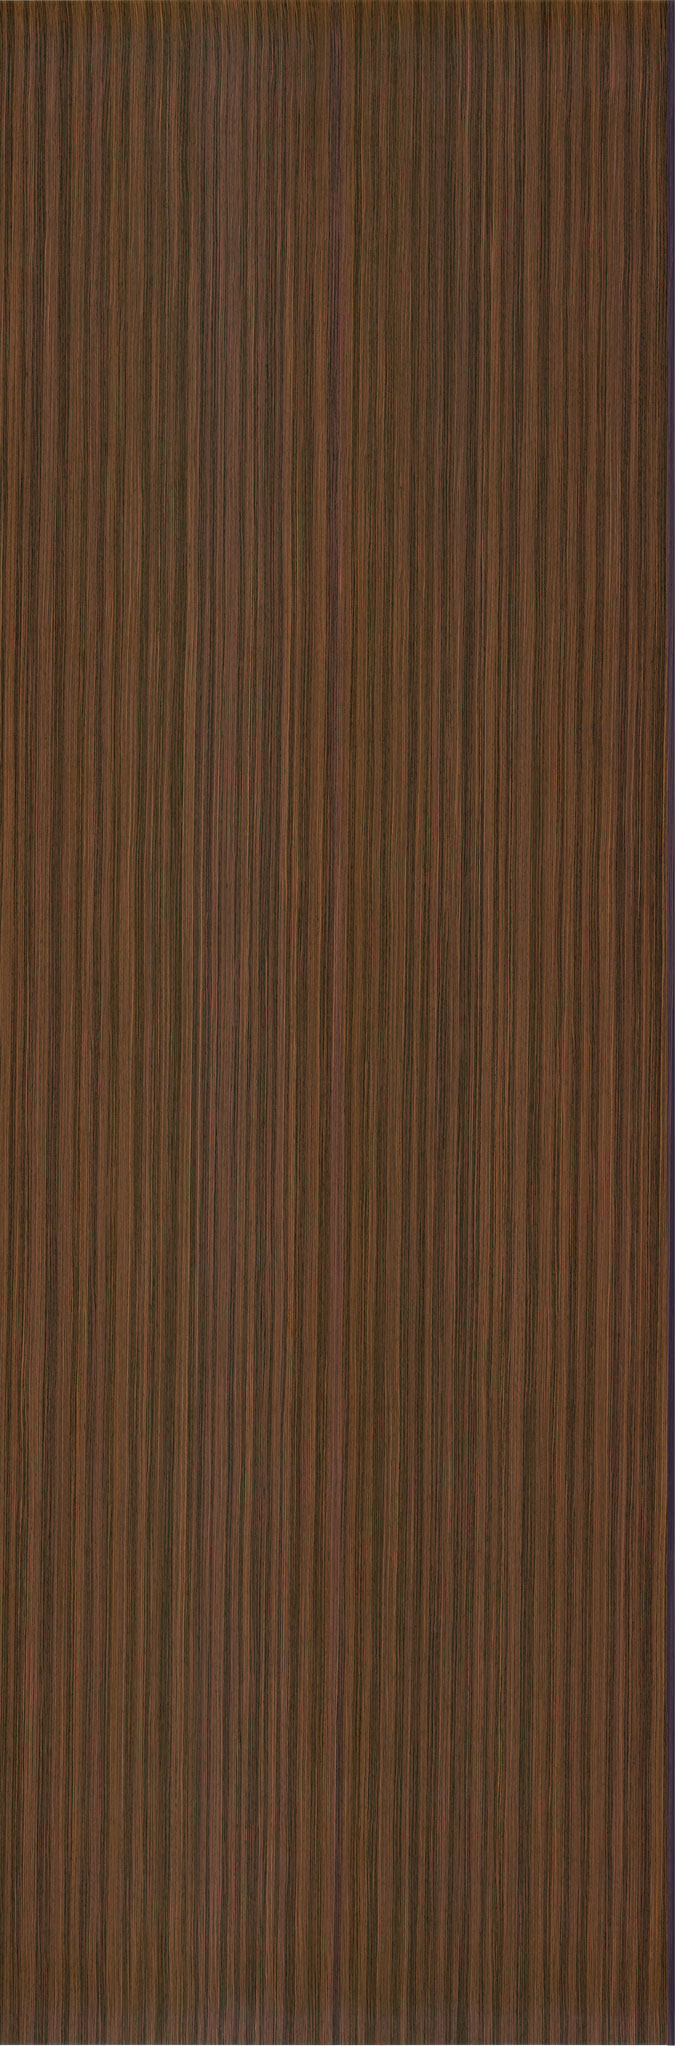 Recon East Indian Rosewood QC